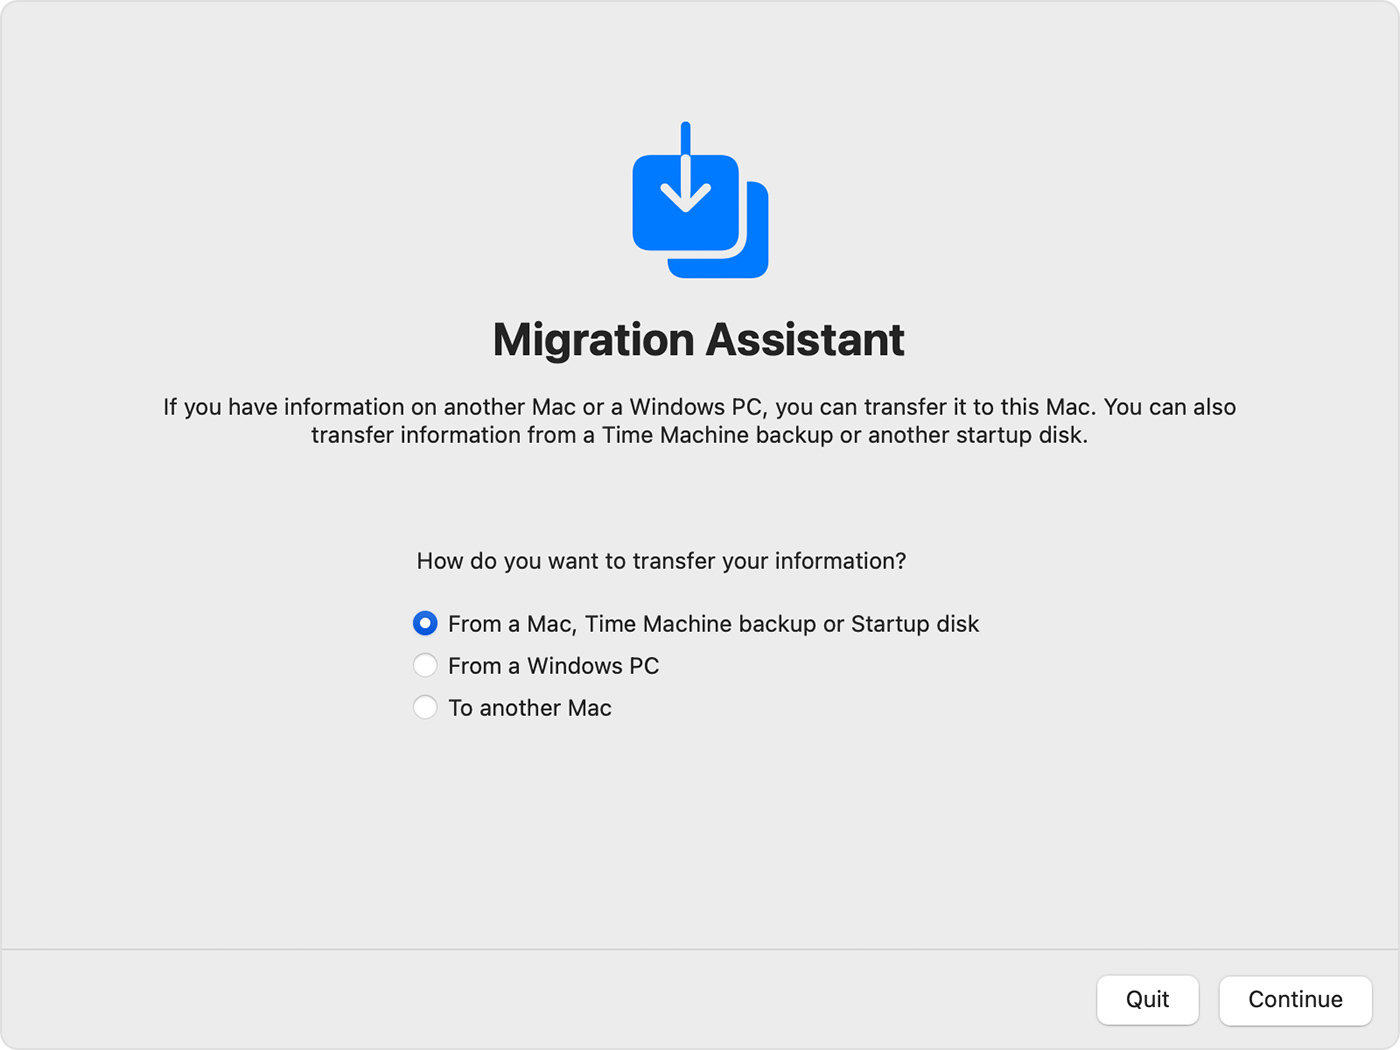 Migration Assistant: How do you want to transfer your information?